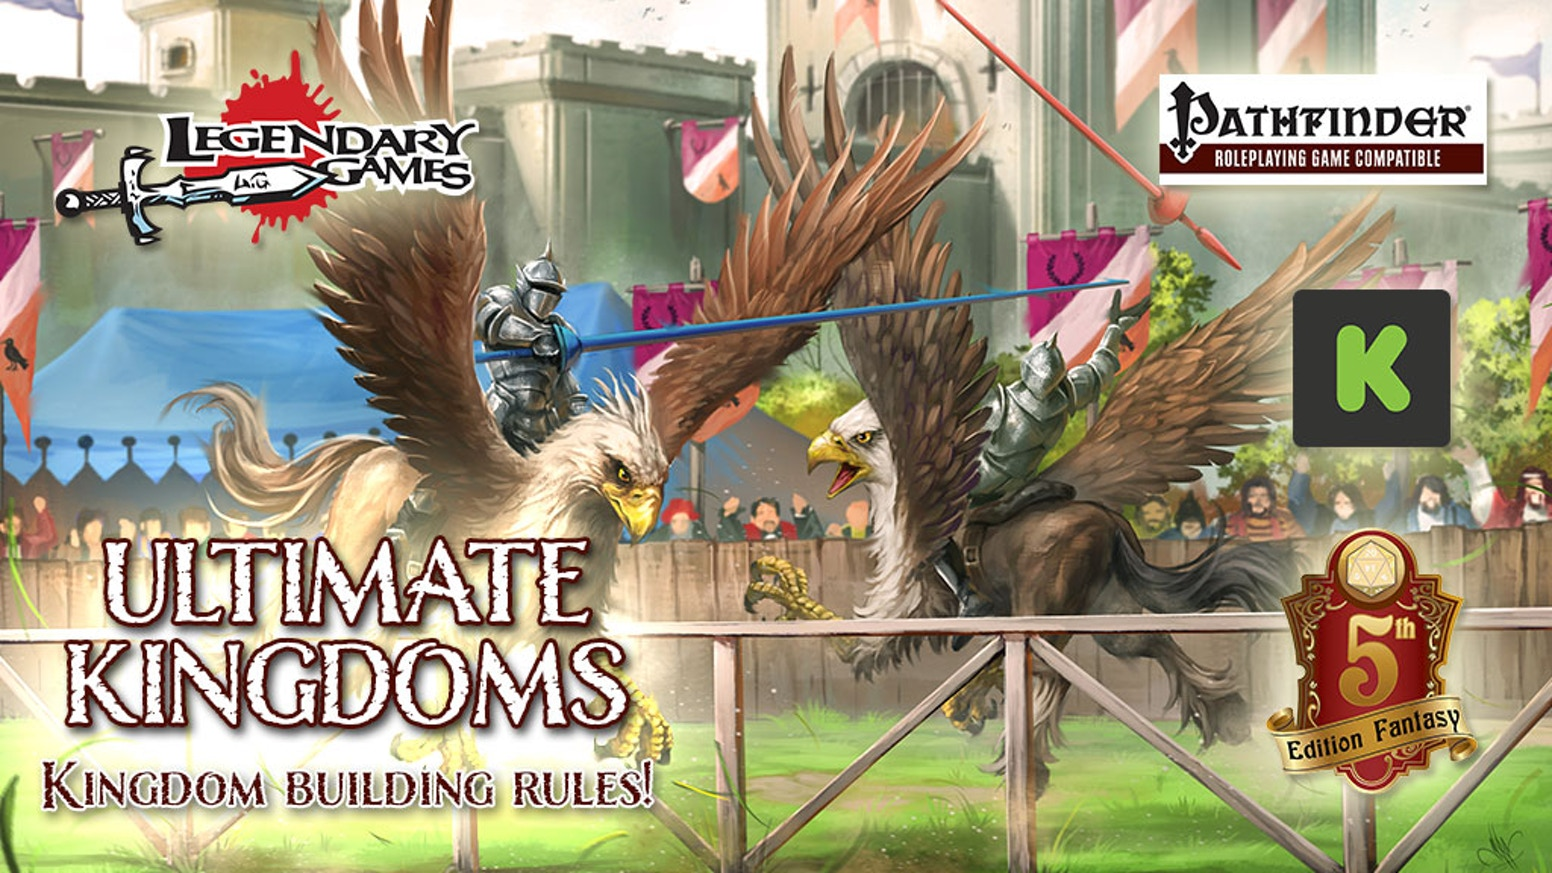 Ultimate Kingdoms for DnD 5E or PFRPG by Legendary Games — Kickstarter